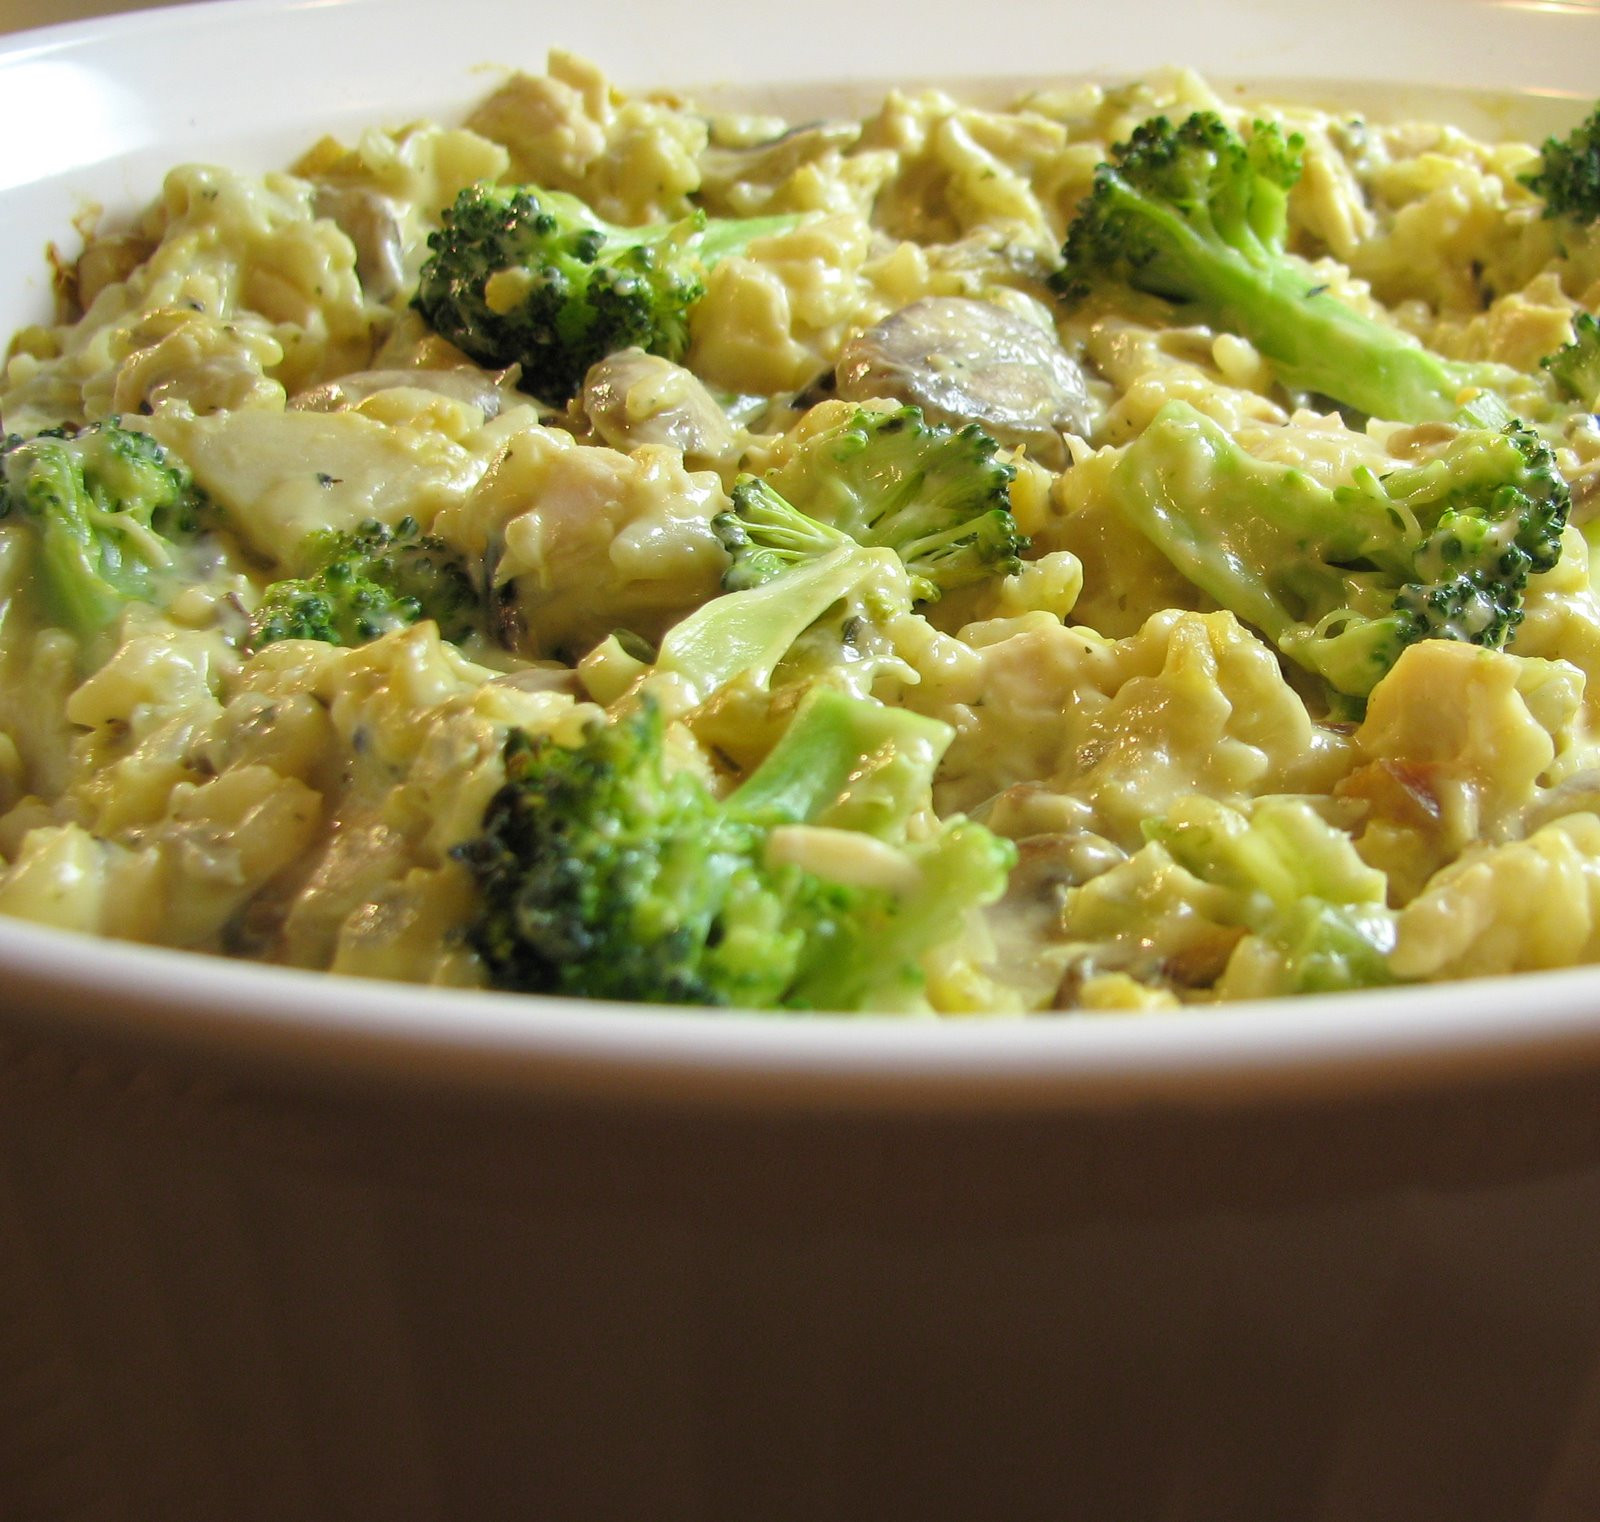 Chicken And Broccoli Recipes Low Calorie  Christina s Blog Spot Low Fat Chicken Broccoli and Rice